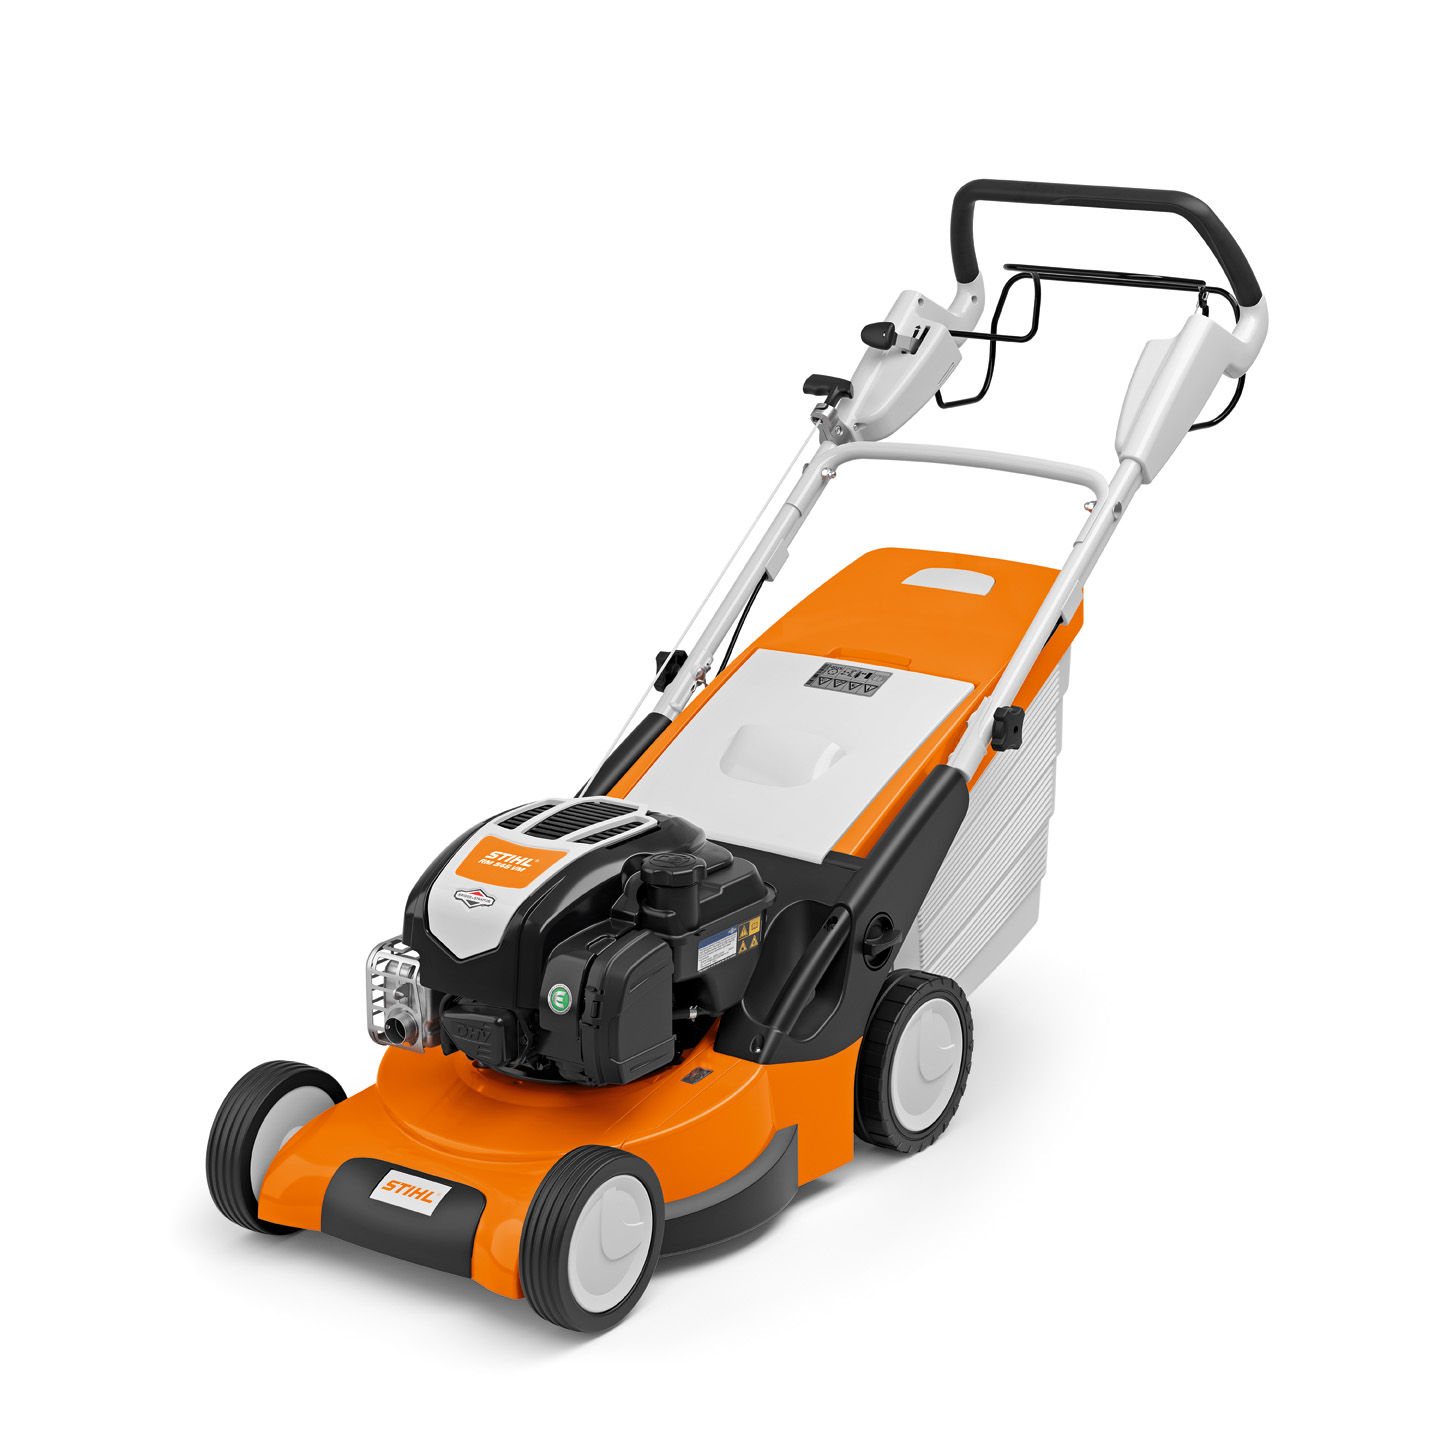 RM 545 VM - POWERFUL SELF-PROPELLED PETROL LAWN MOWER WITH MULCHING FUNCTION AND VARIO DRIVE